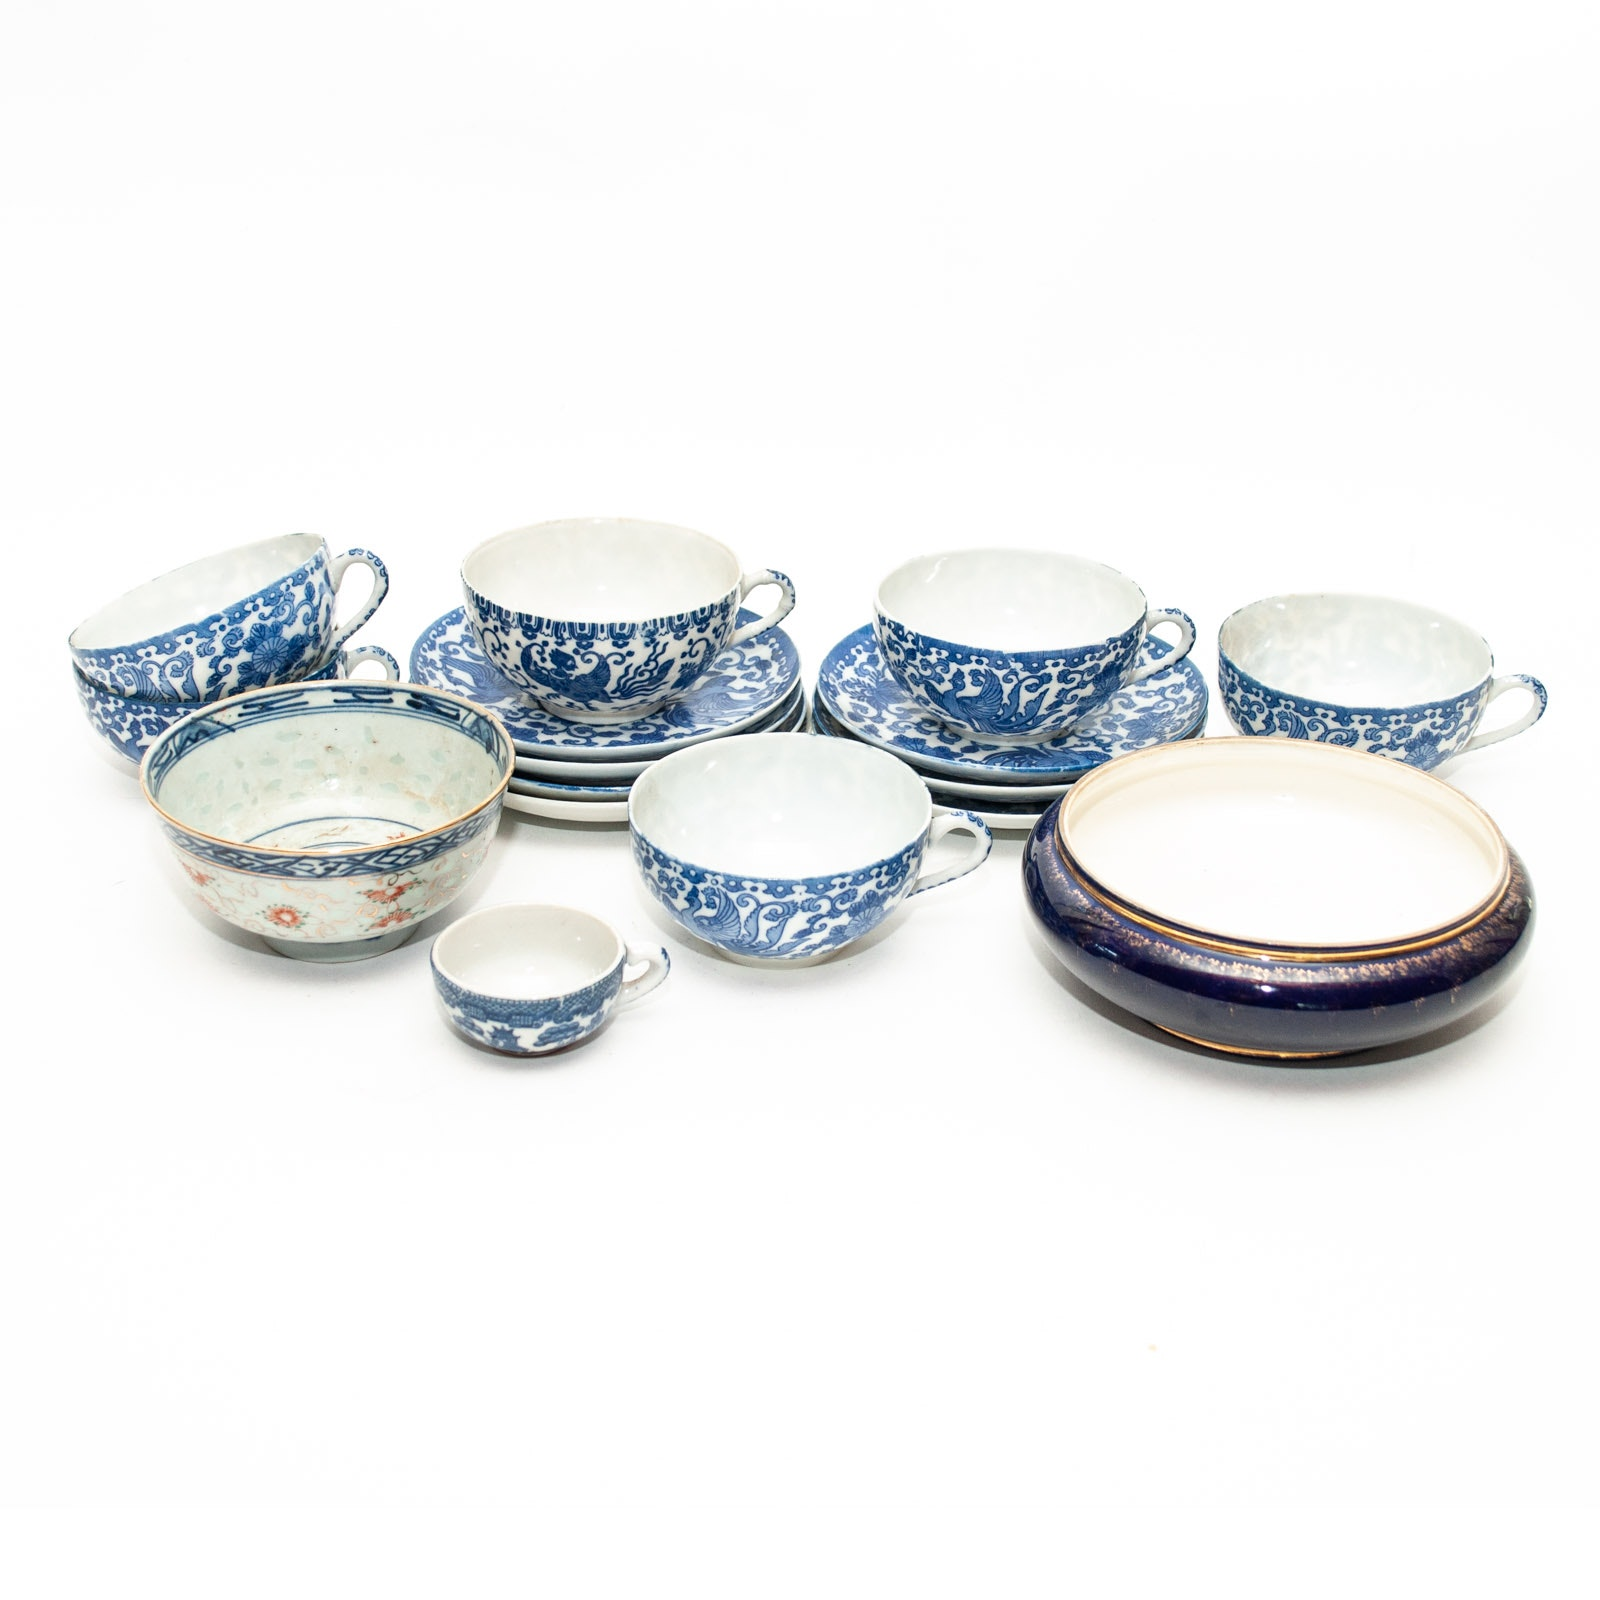 Royal Vienna Style Bowl with Vintage East Asian Style Teaware